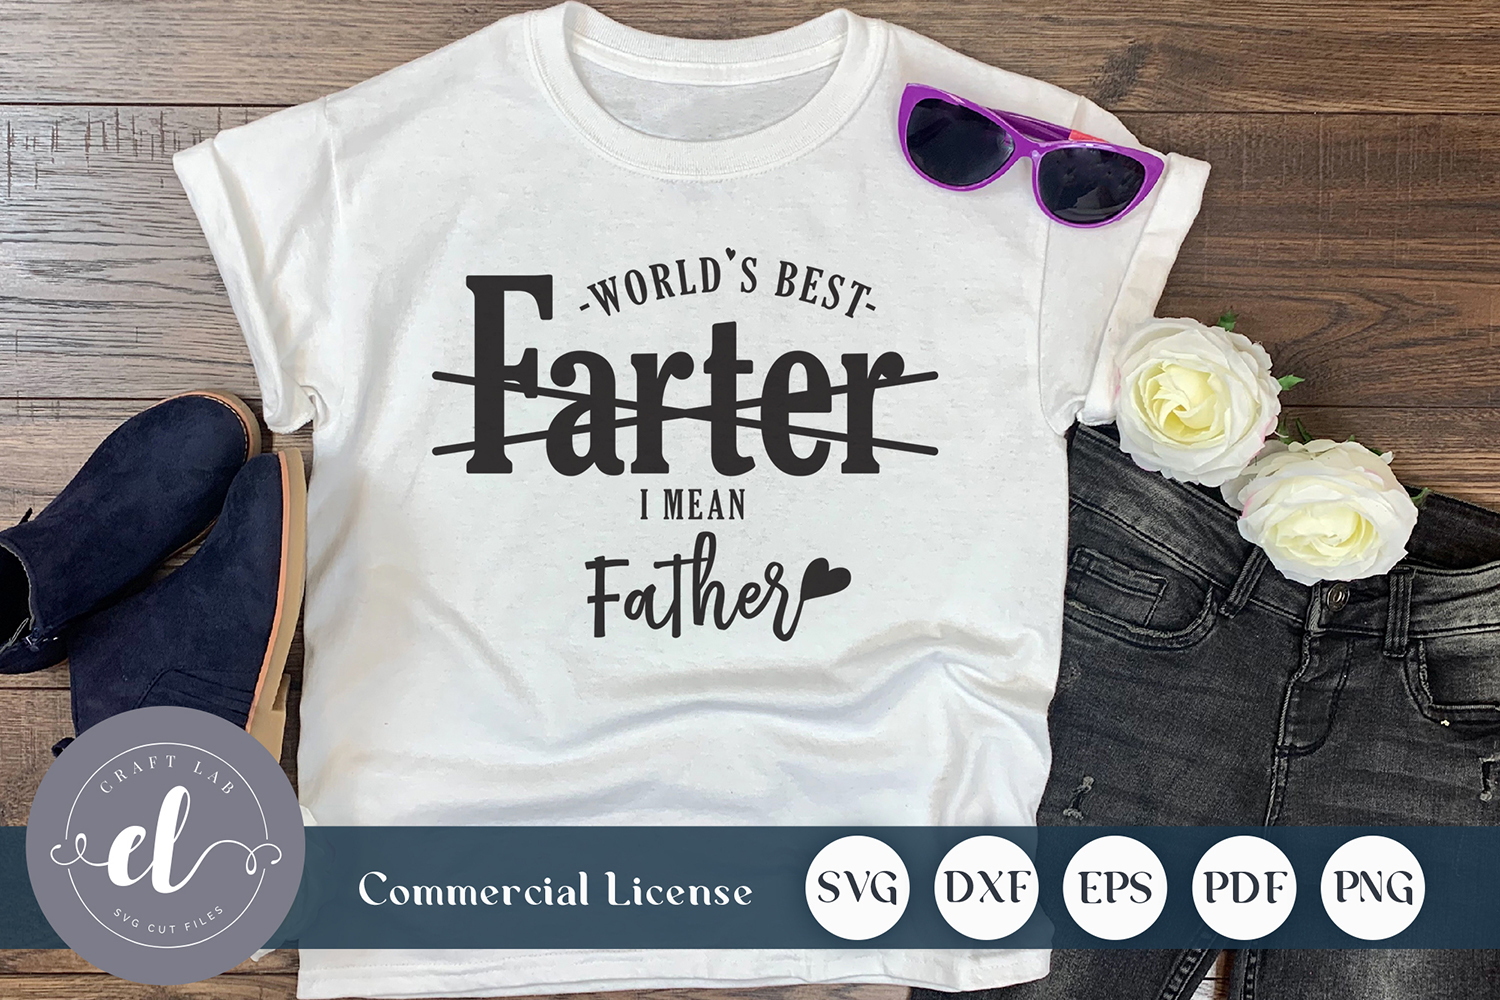 Download Free World S Best Farter I Mean Father Graphic By Craftlabsvg for Cricut Explore, Silhouette and other cutting machines.